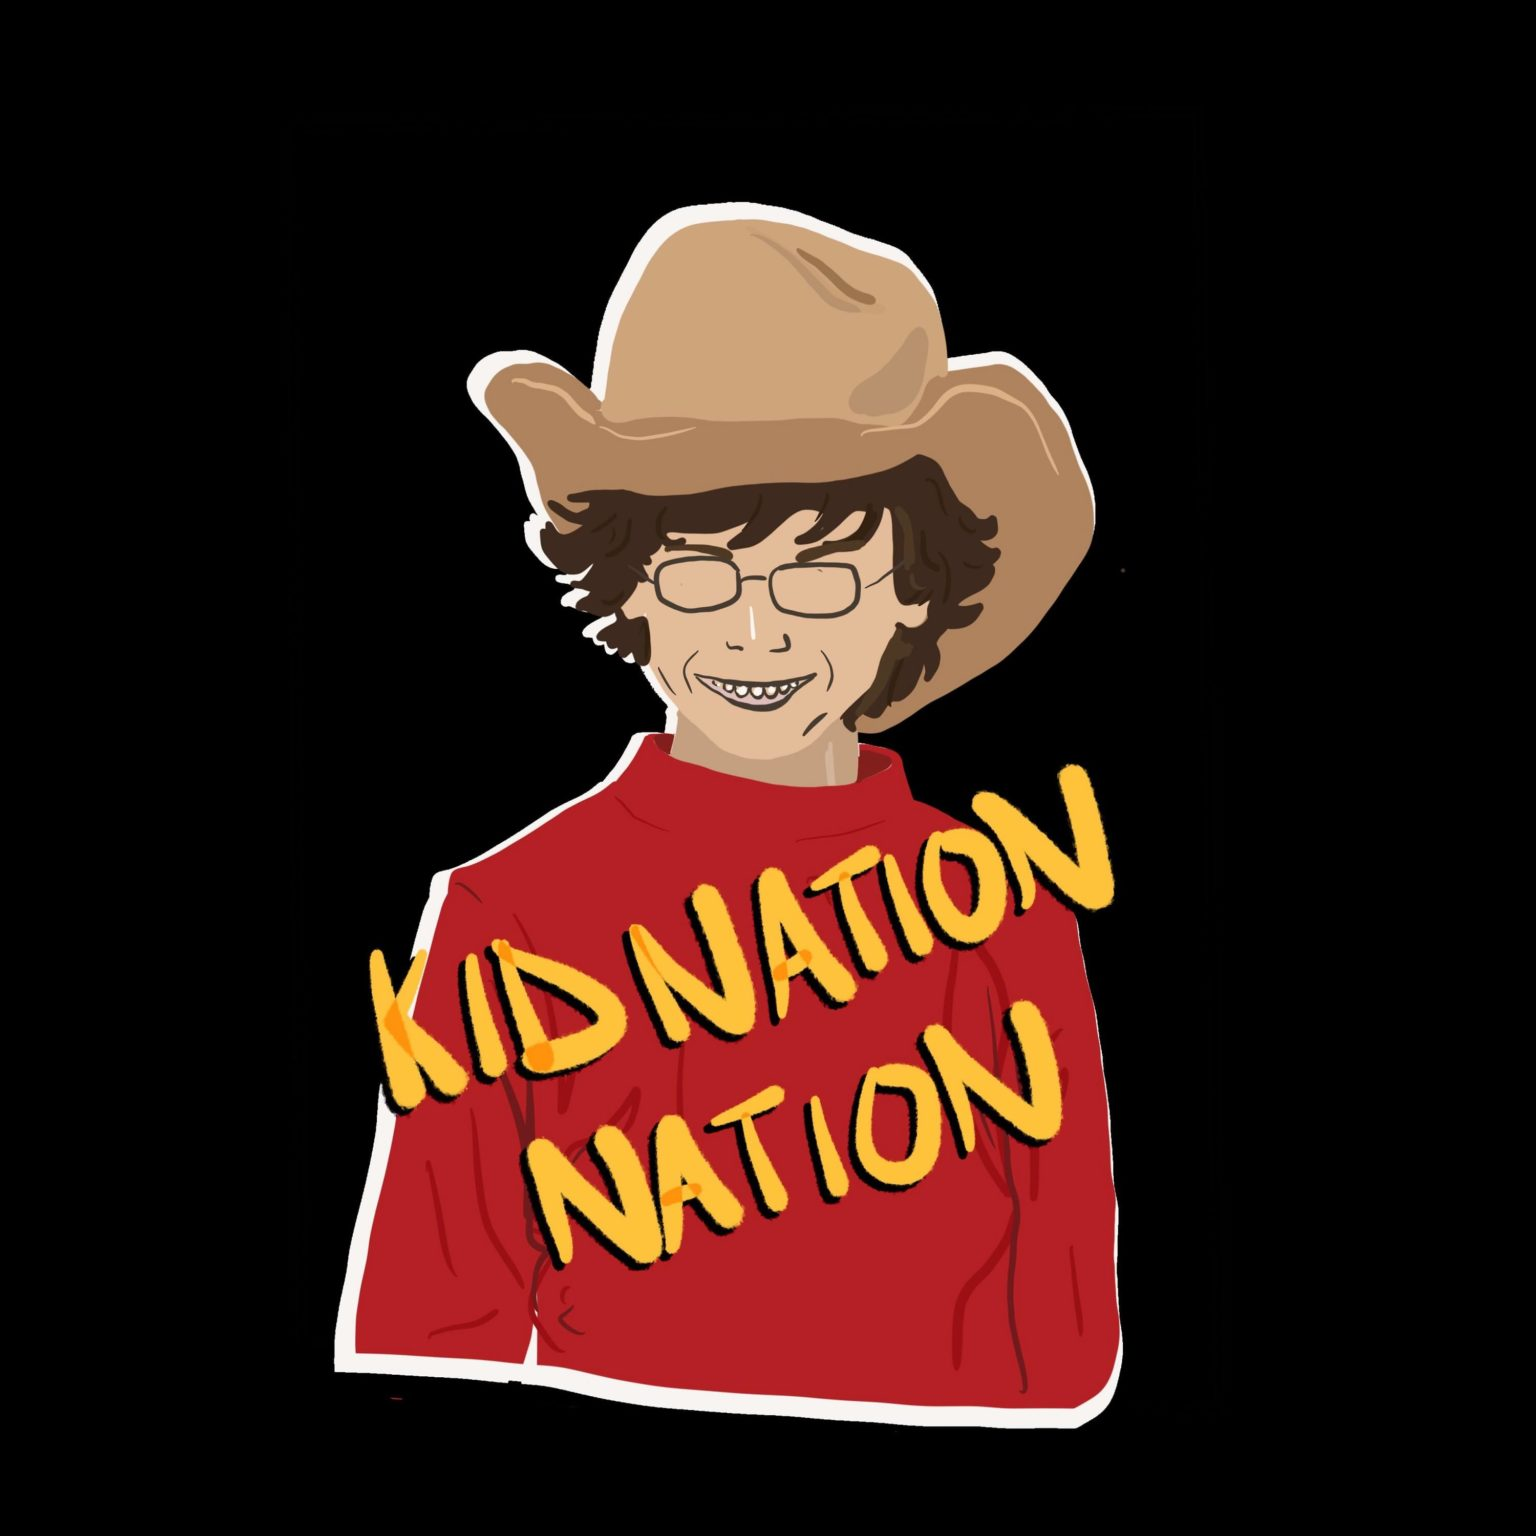 Kid Nation Nation